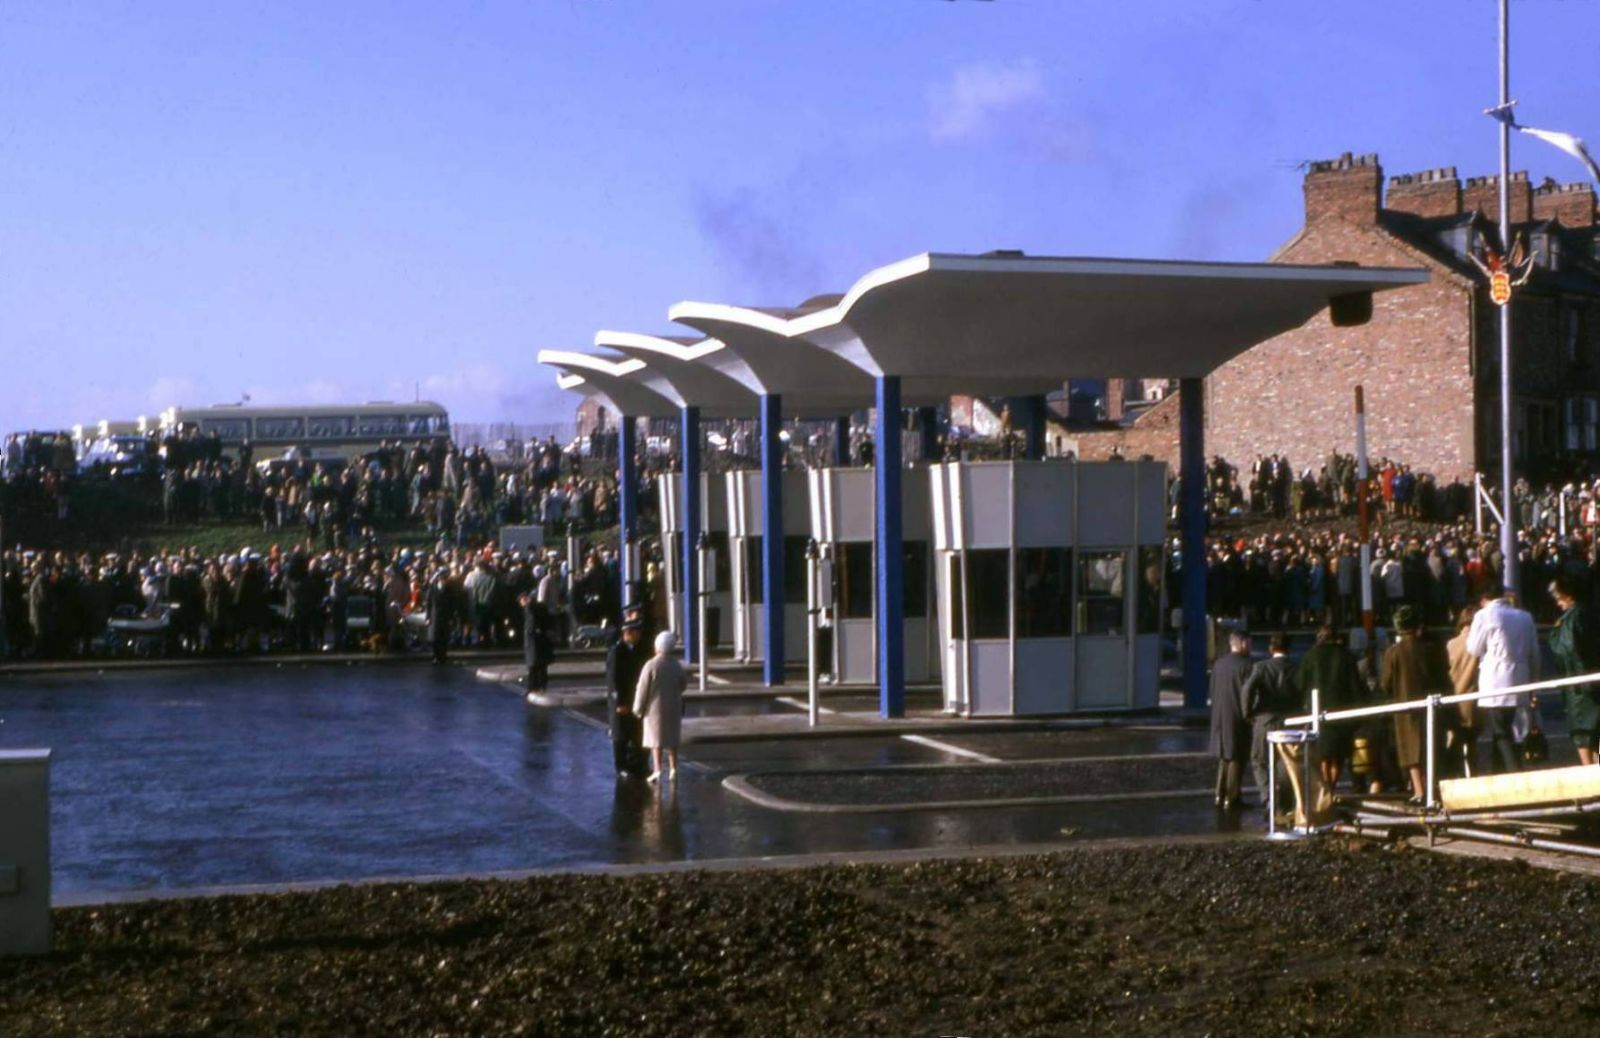 Opening of the Tyne Tunnel, January 1968